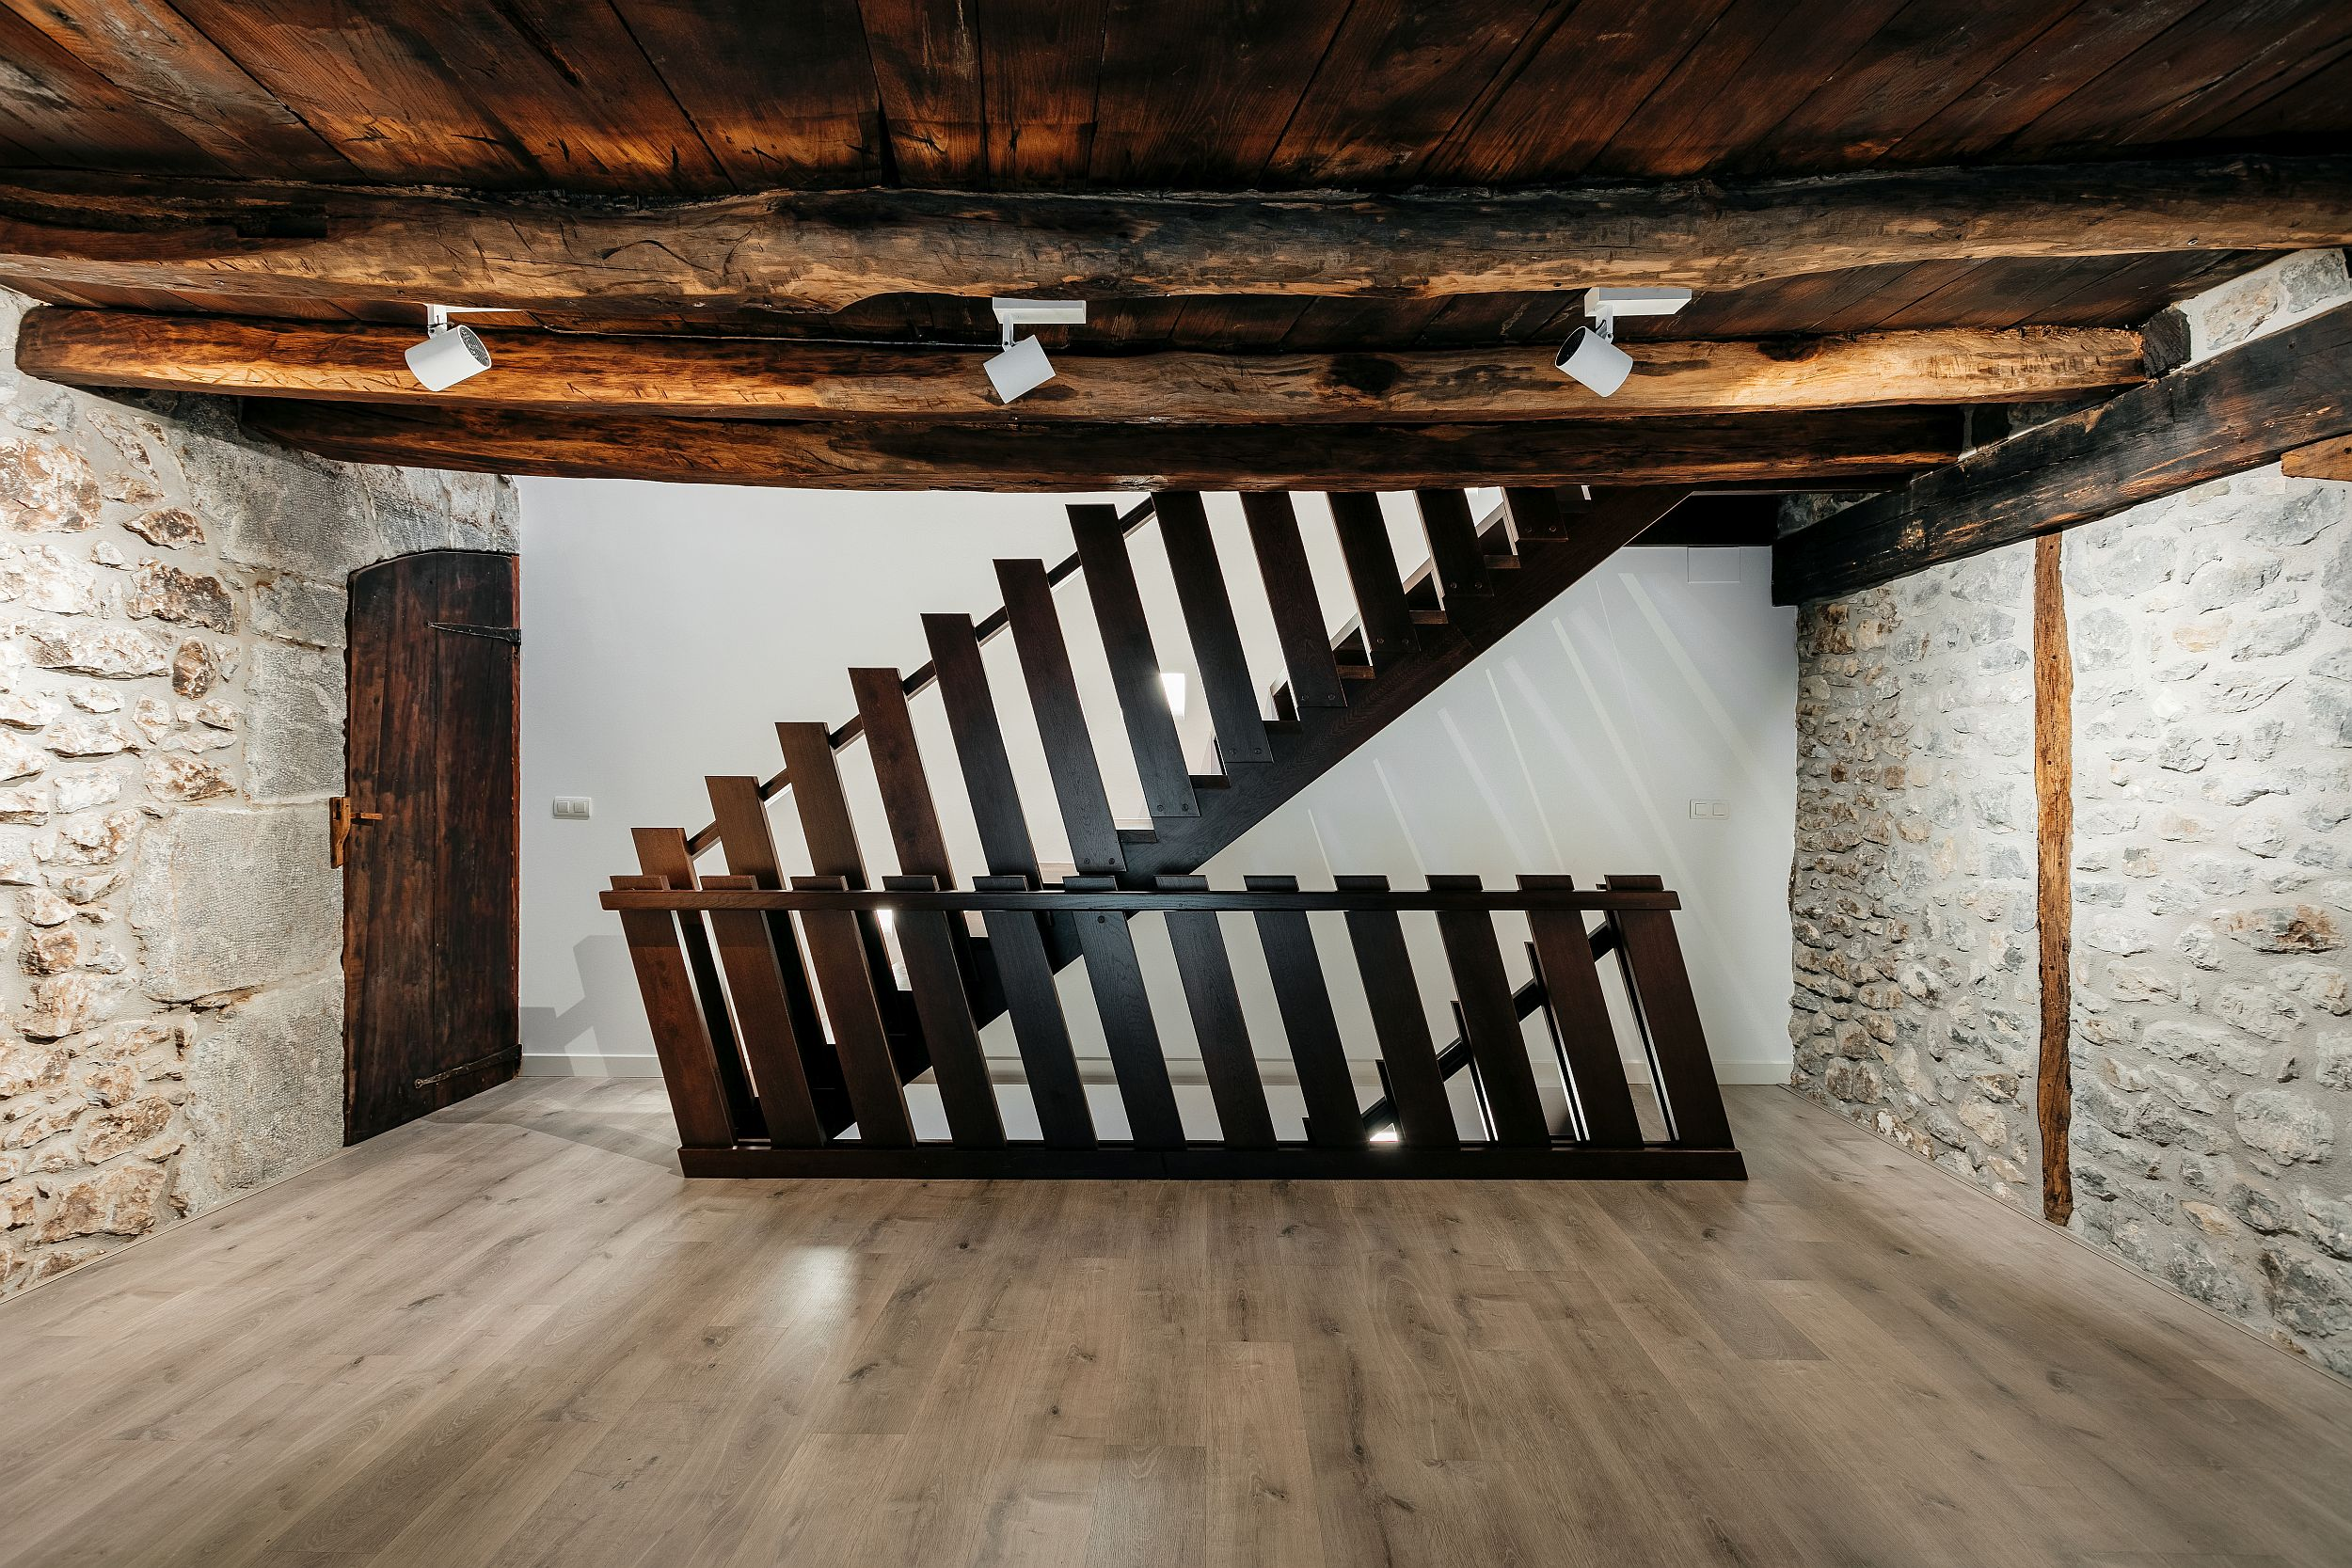 Weathered walls, ceiling beams and metal staircase usher in plenty of textural contrast